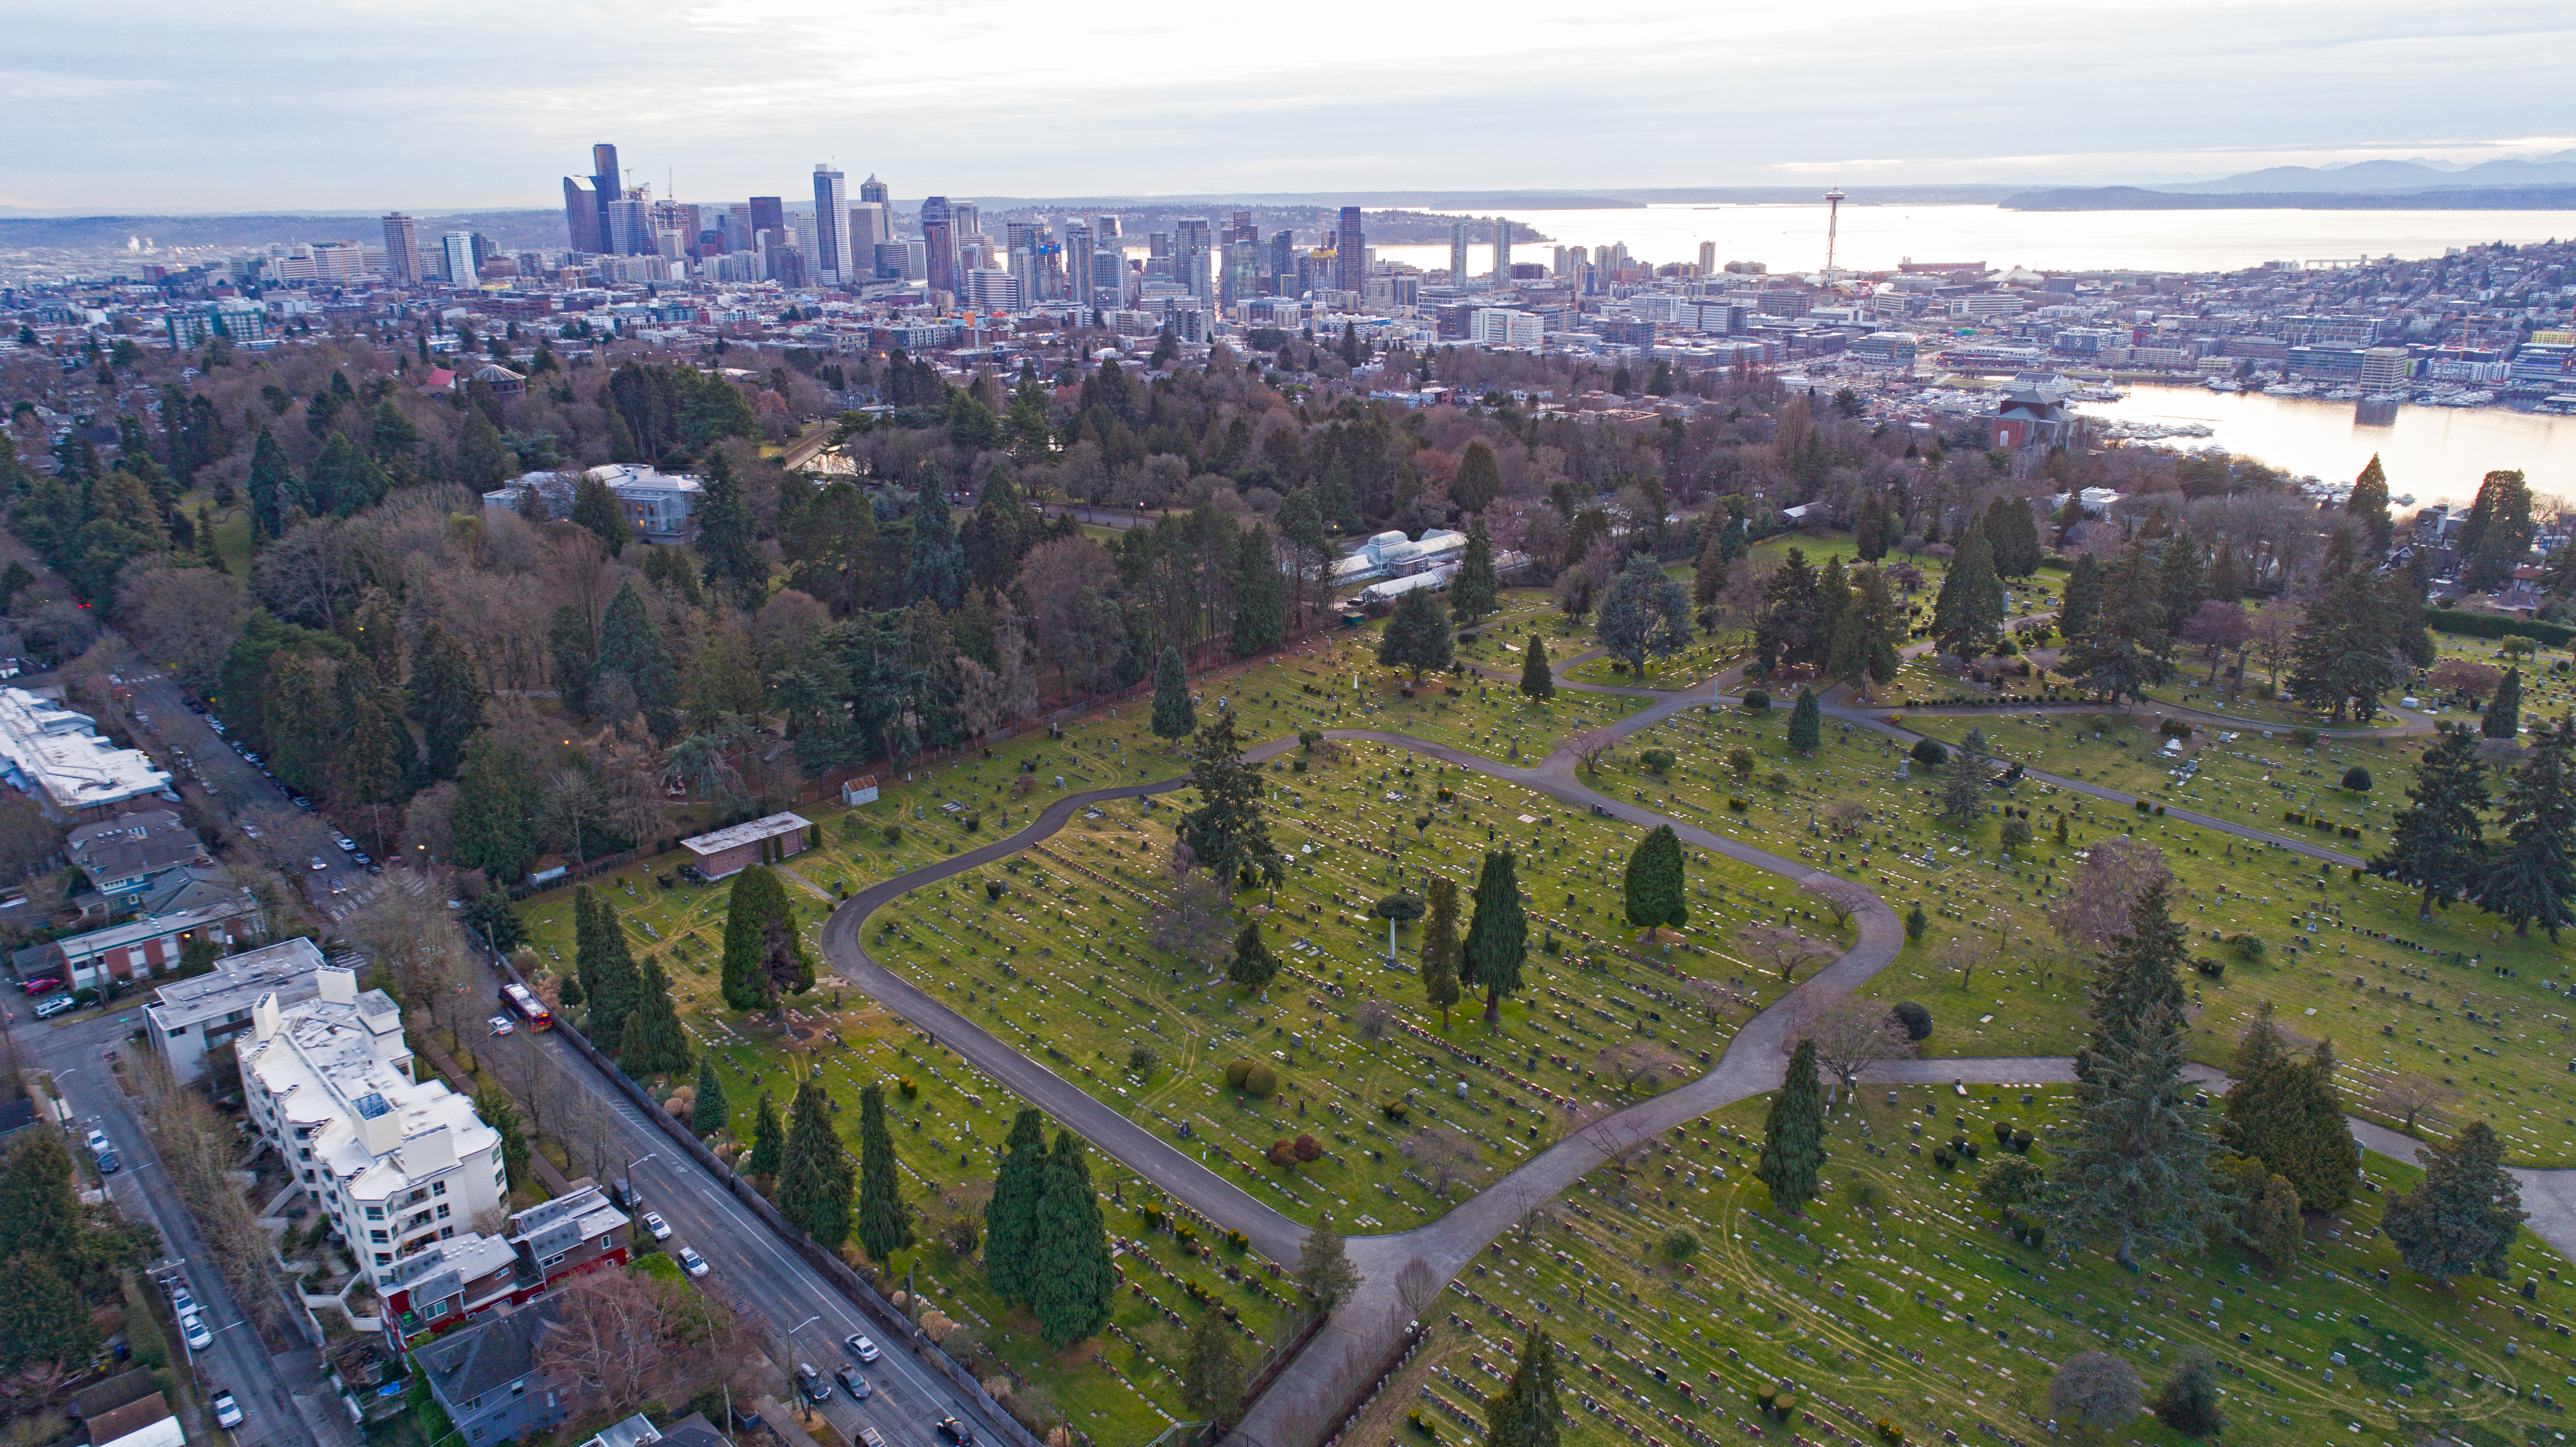 An aerial photograph of a large lawn with concrete paths, full of graves and dotted with evergreen trees. A busy road runs to the left, and skyscrapers and a lake are visible in the distance.